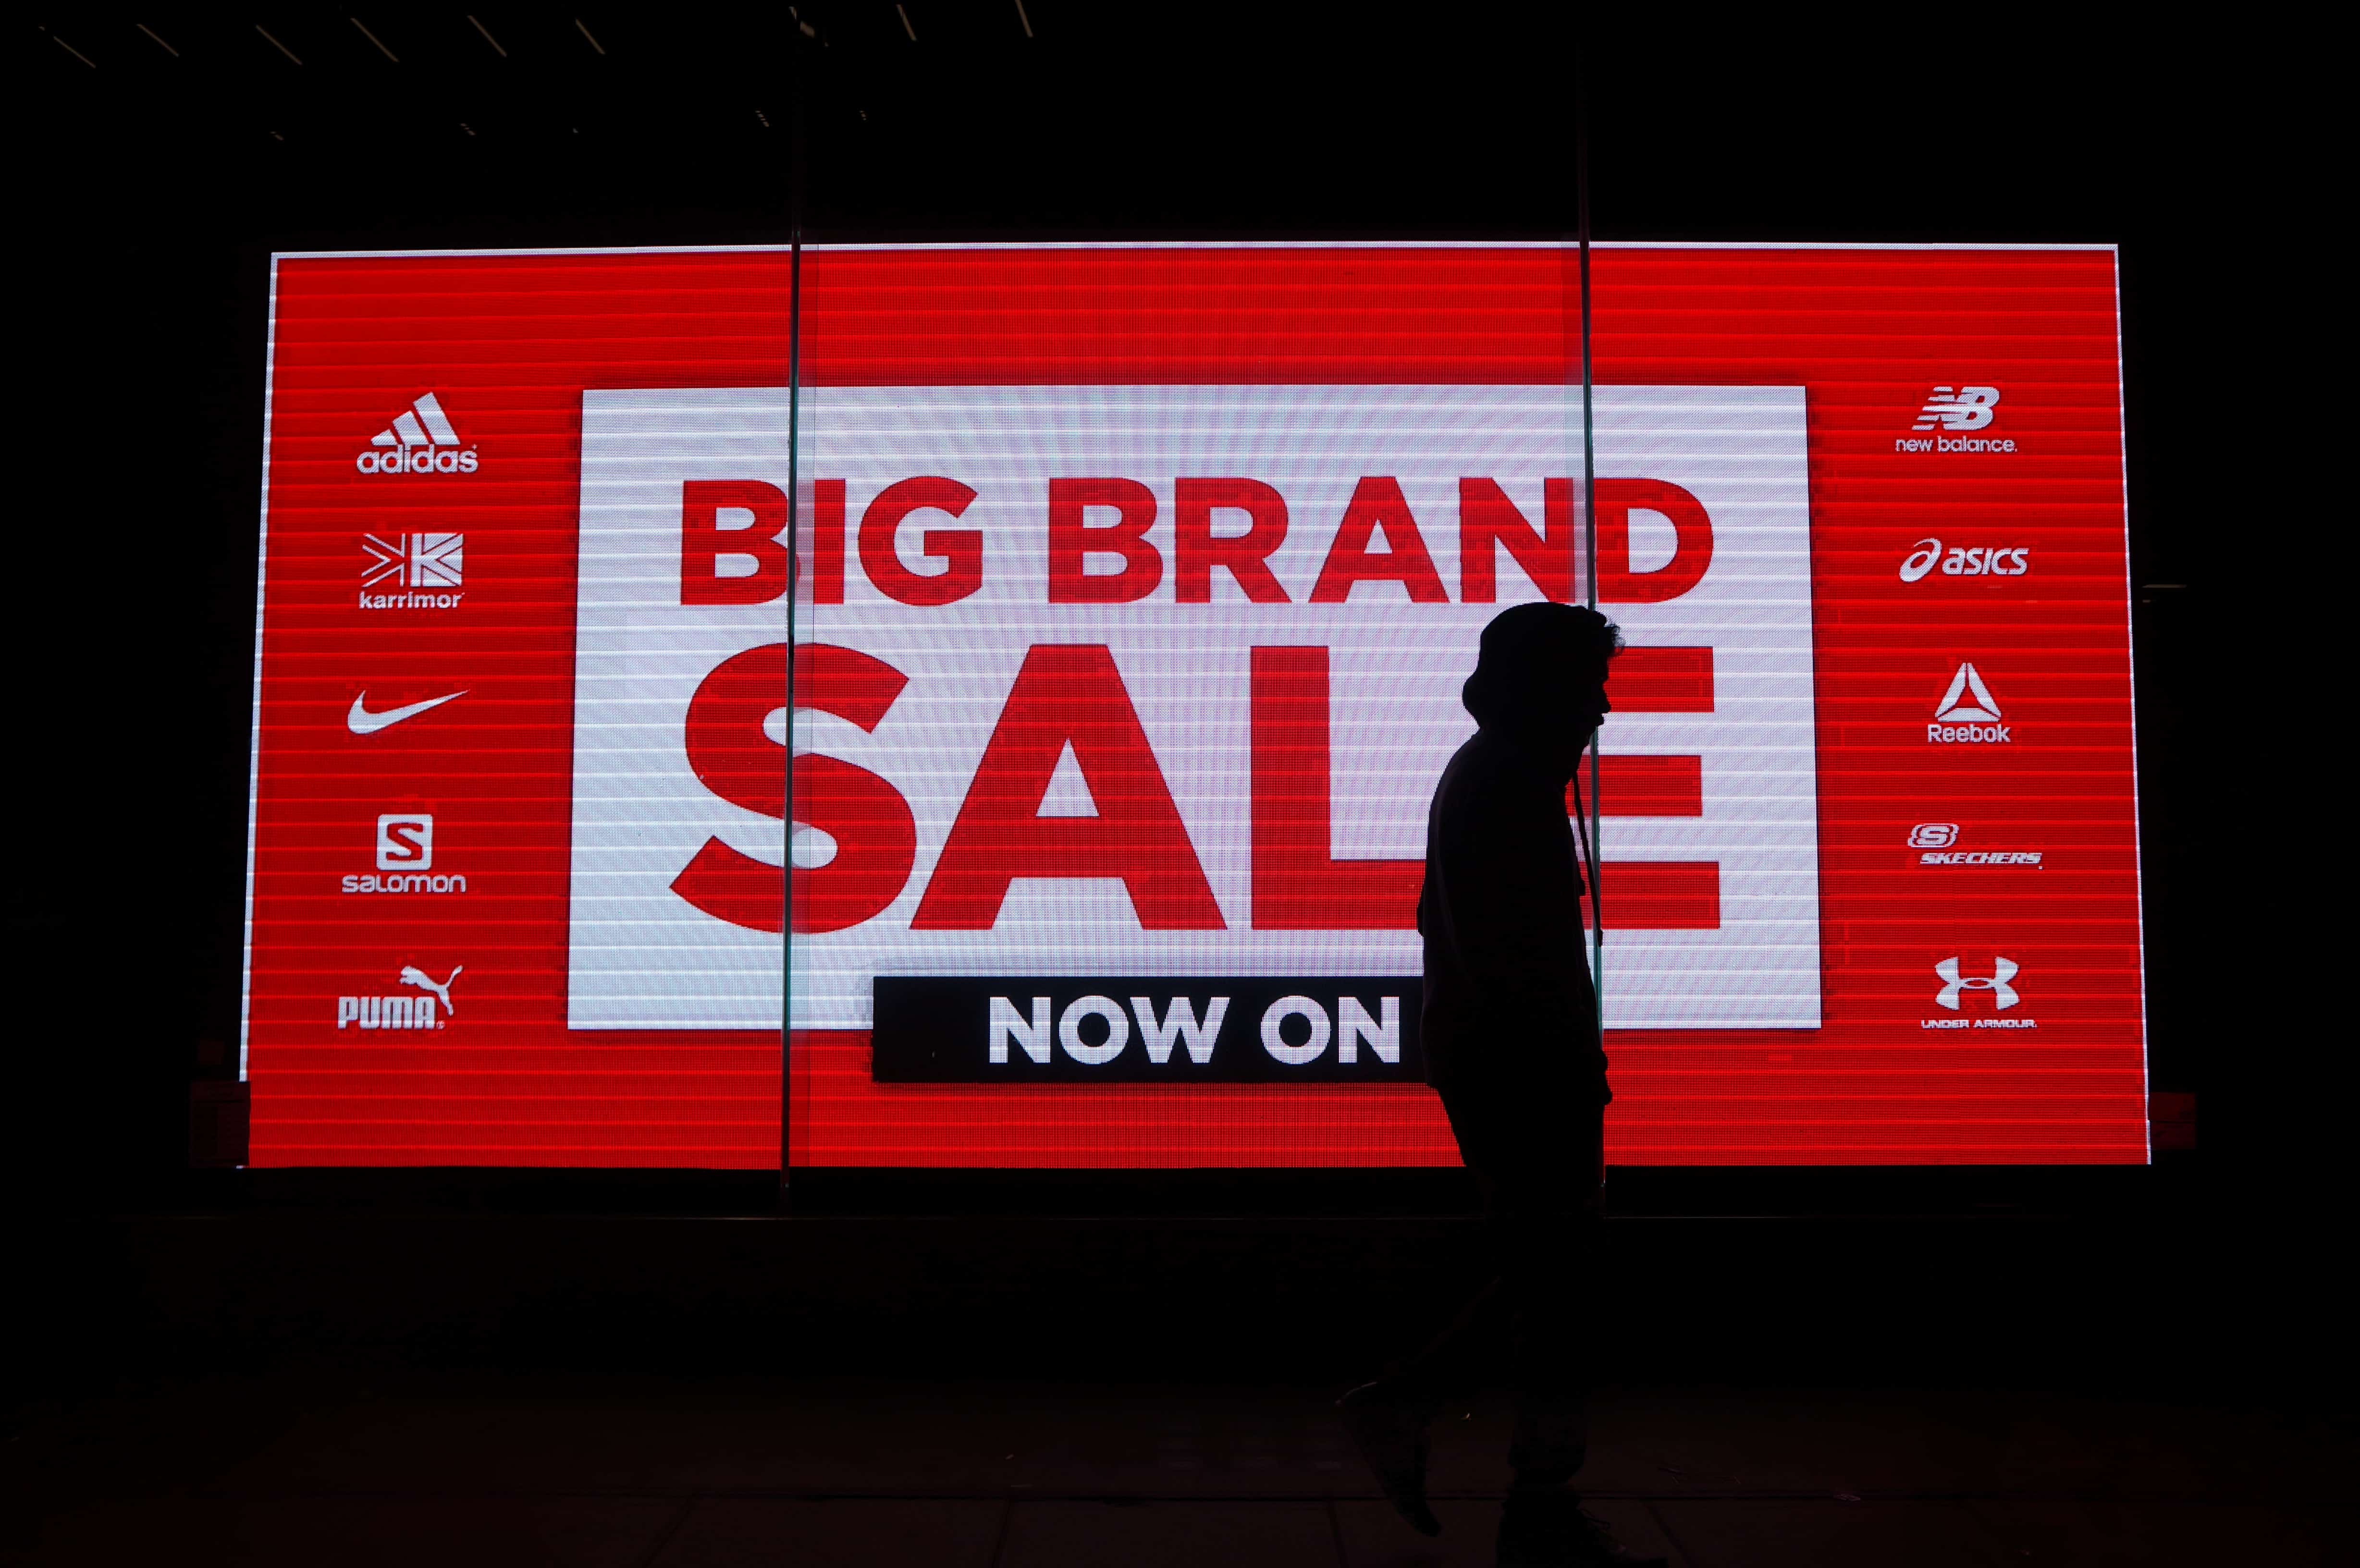 Black Friday / Cyber Monday marketing – why is it so important?